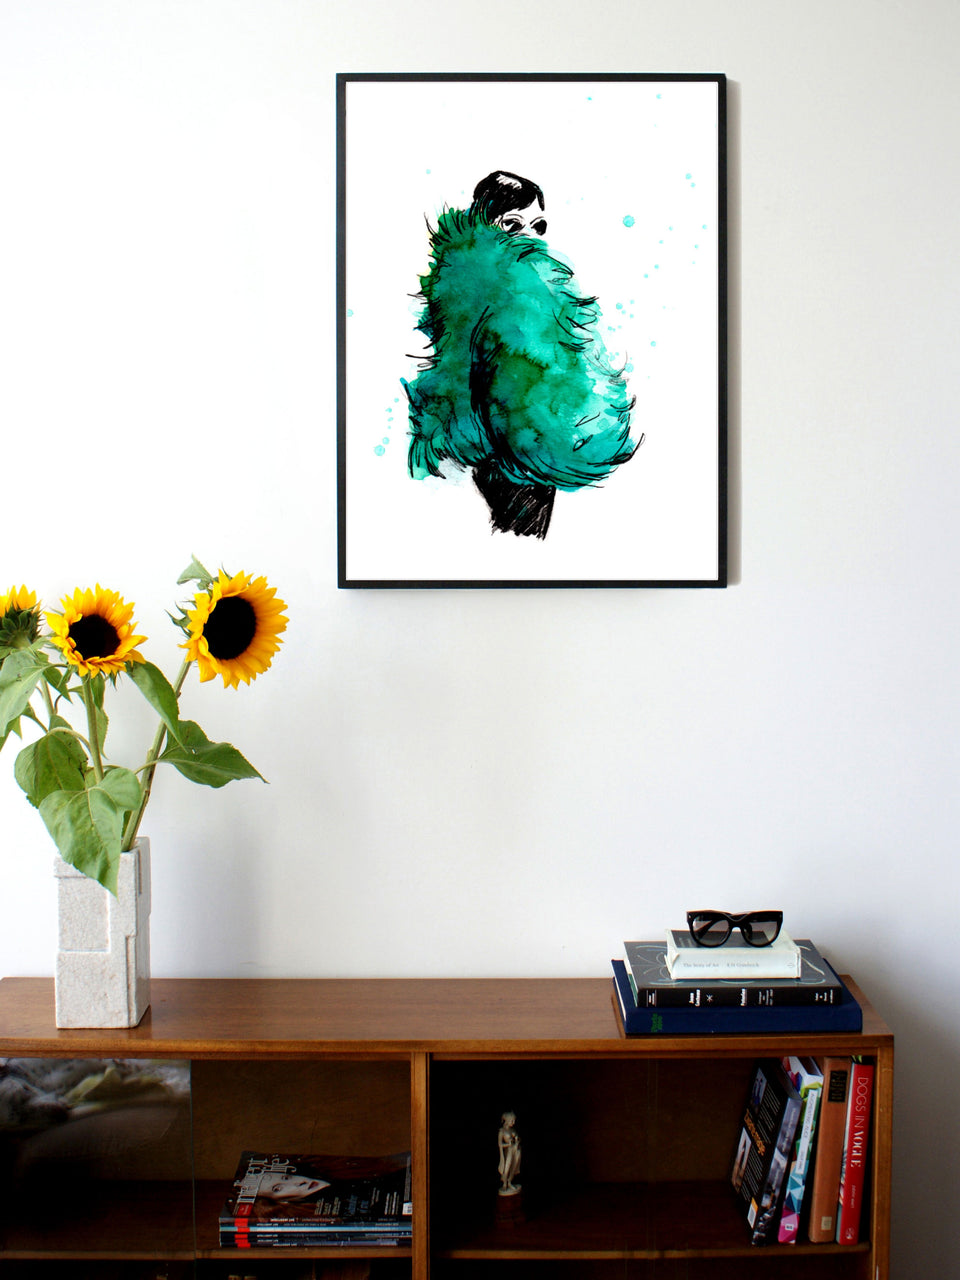 Fashion illustration print of Fur Parool by Sjoukje Bierma - woman in green fur - 60 x 80 cm framed